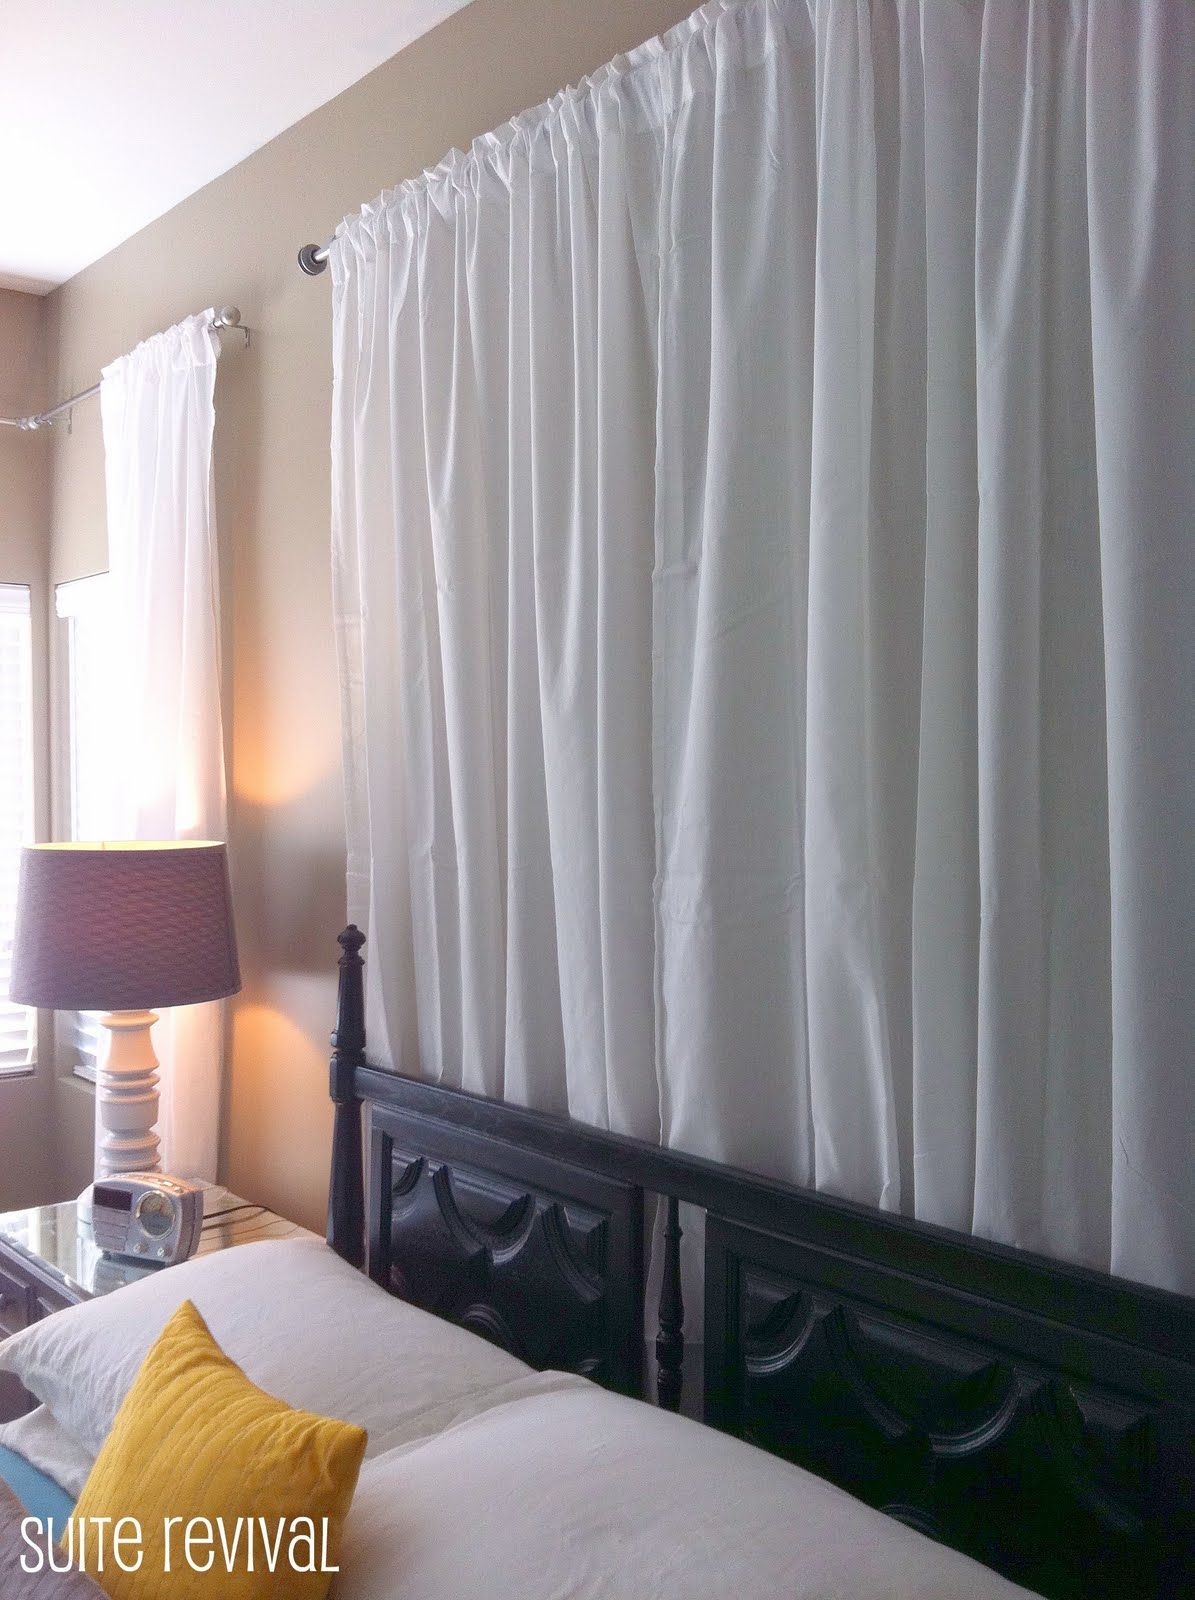 Curtain Headboard An Inexpensive Duvet Cover Or Shower Is Good For Fun Patterns A Set Of Queen King Sheets Excellent Choice If